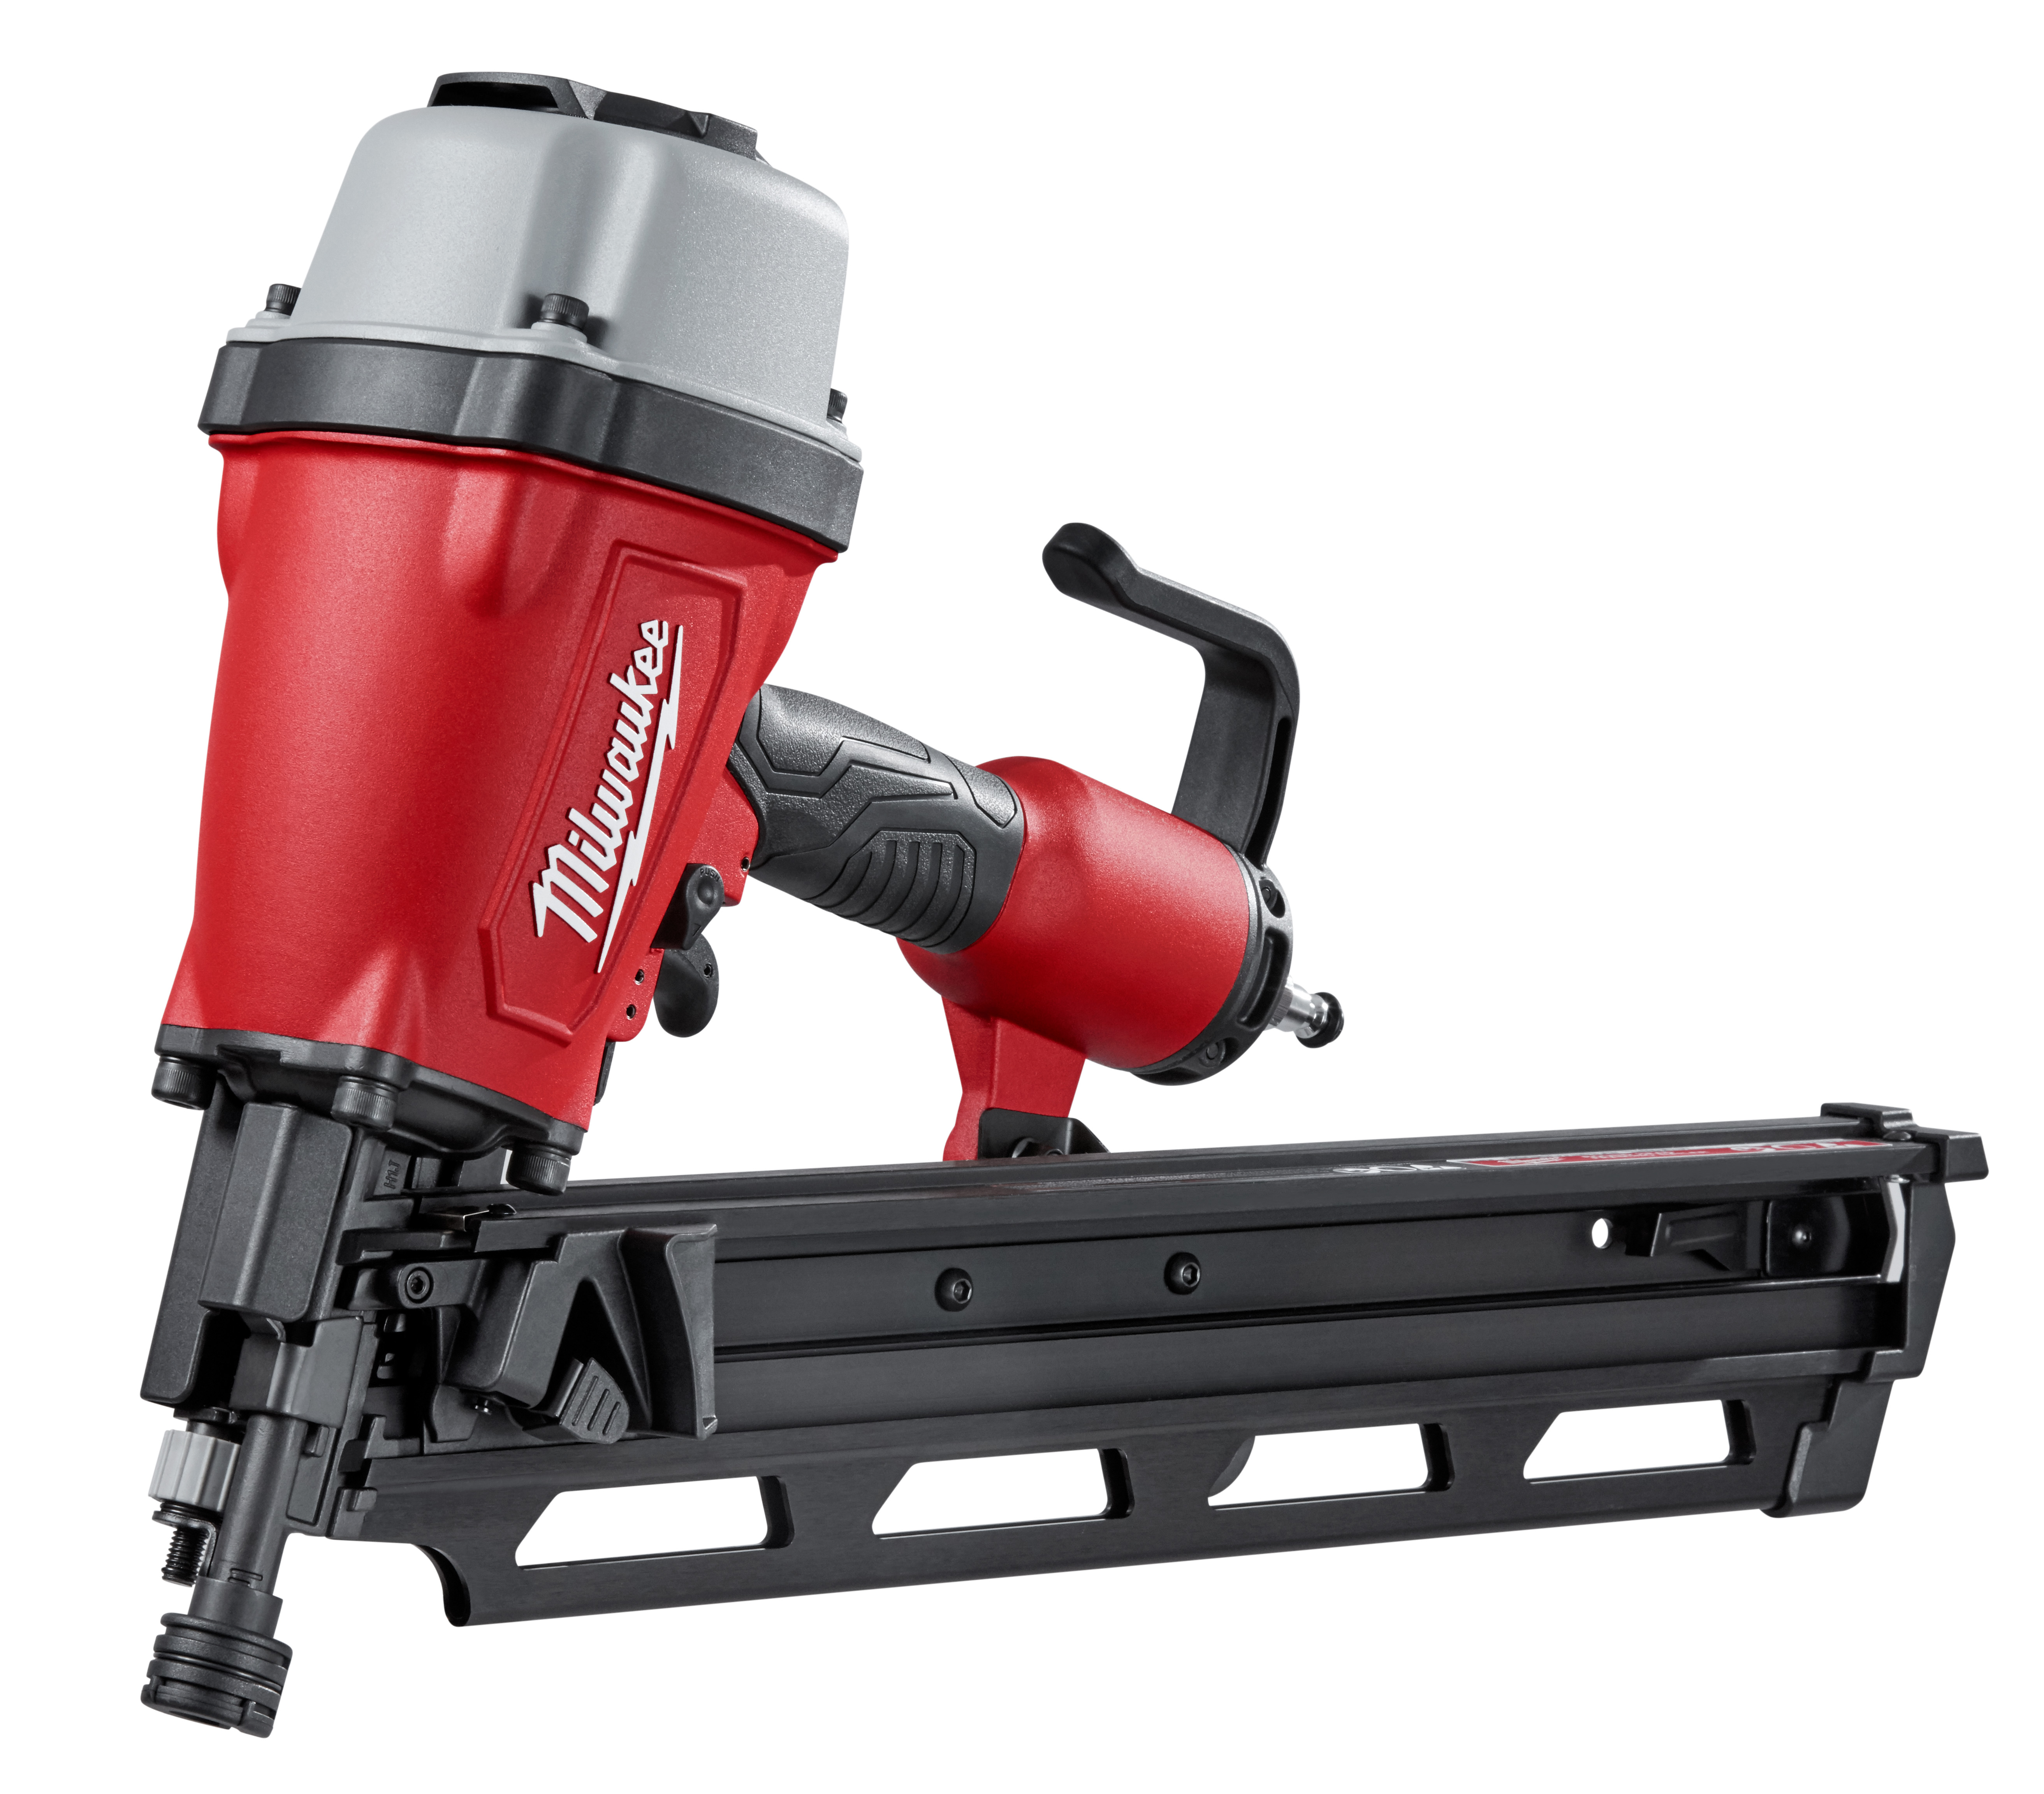 Milwaukee® 7200-20 Full Round Head Framing Nailer, 2 to 3-1/2 in Fastener, 14 in OAL